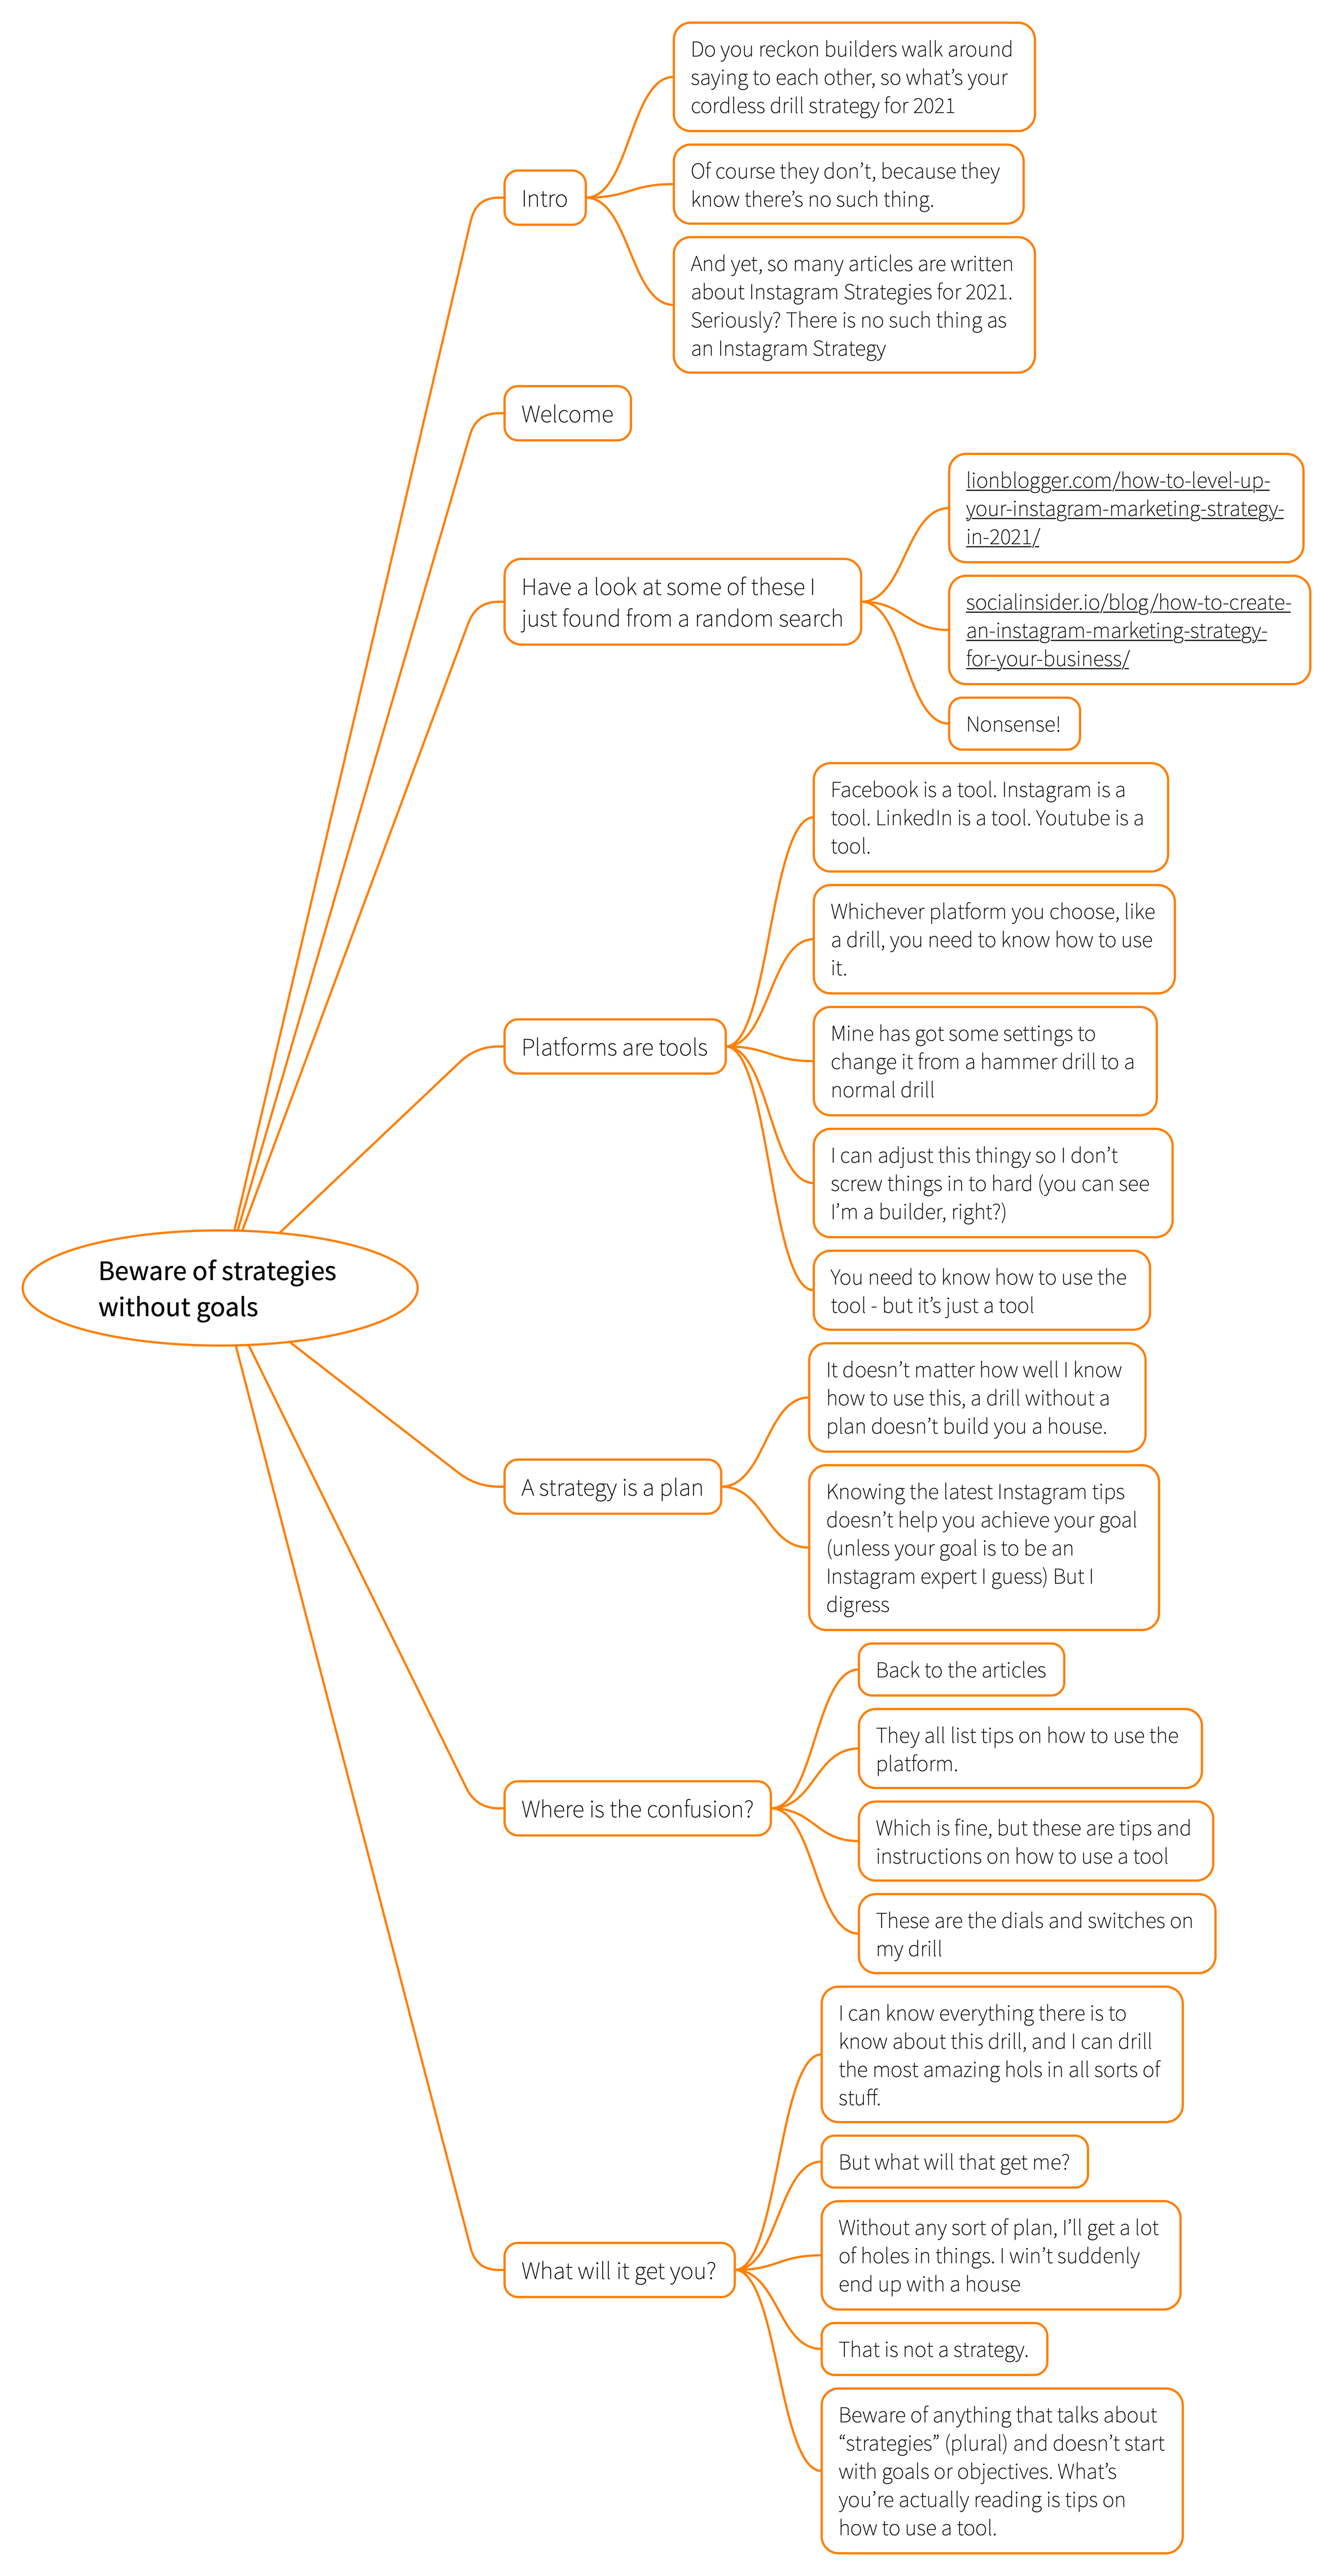 Mindmap of my notes